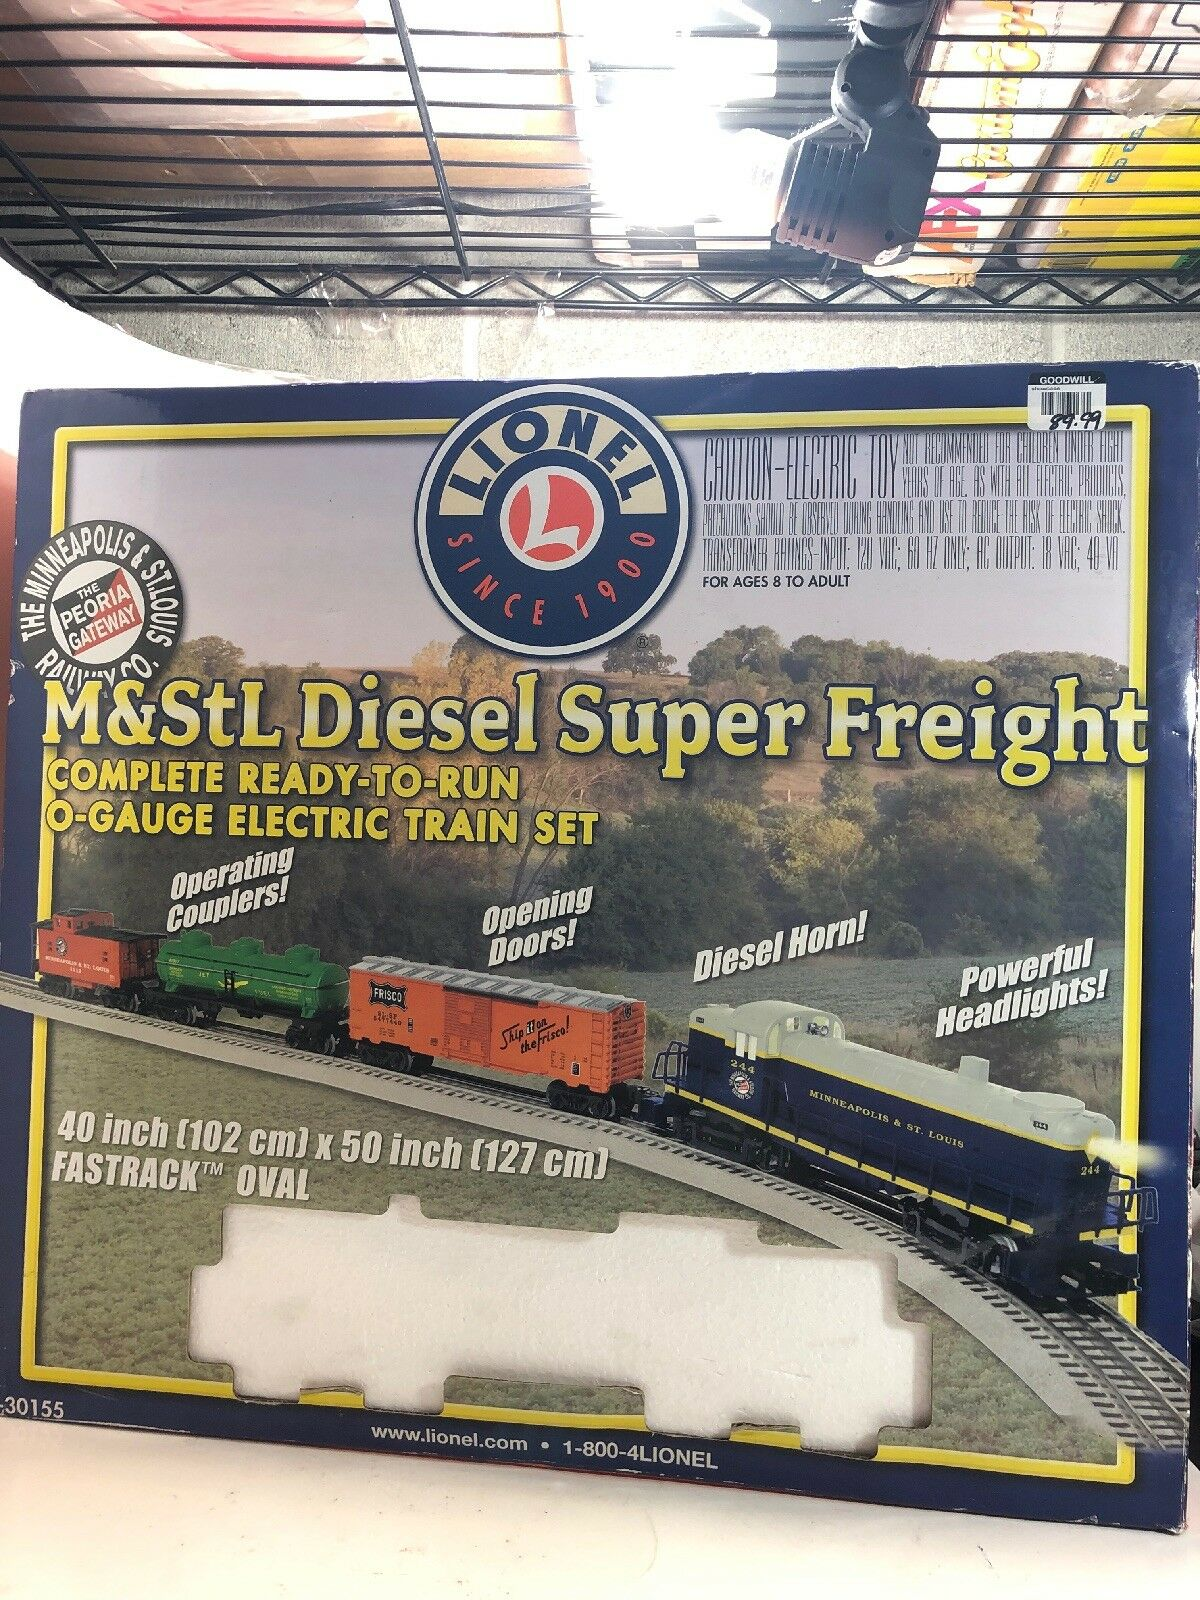 Lionel Minneapolis & St Louis Diesel Super Freight O-gauge electric train set